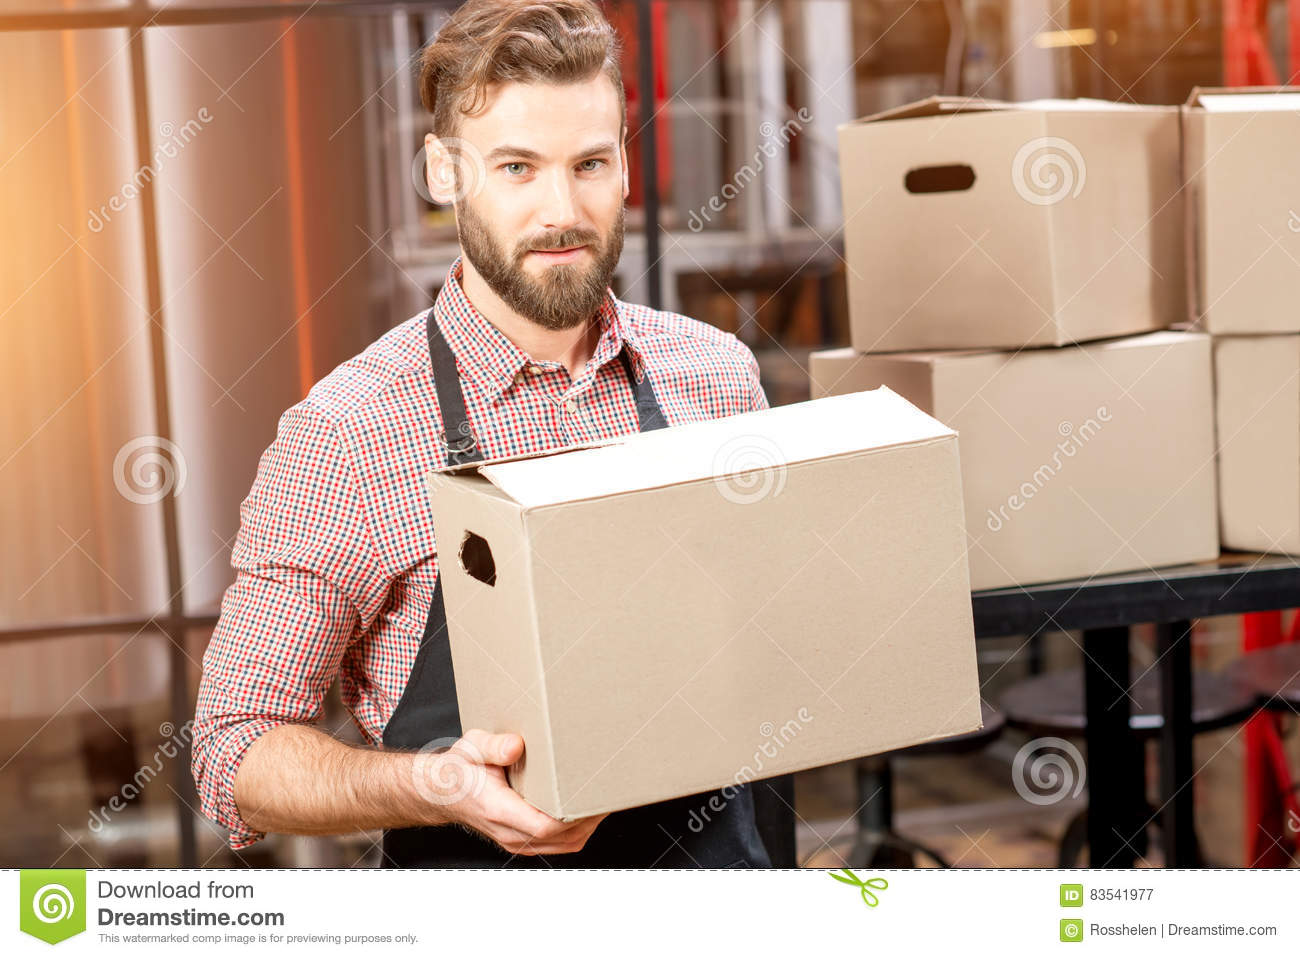 Professional courier with boxes